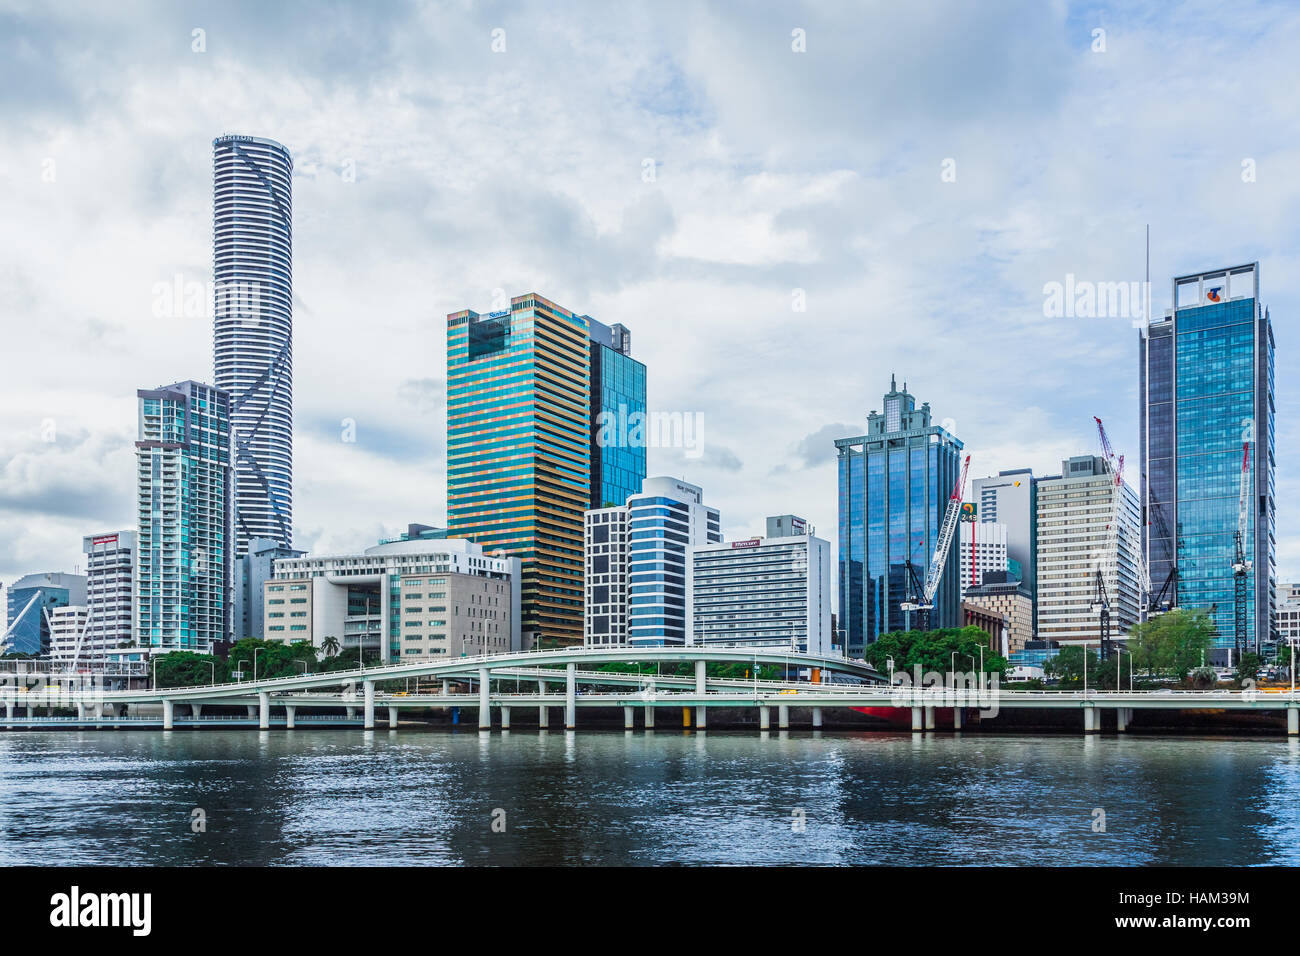 Brisbane, Queensland, Australia cityscape, as seen from the South Bank - Stock Image